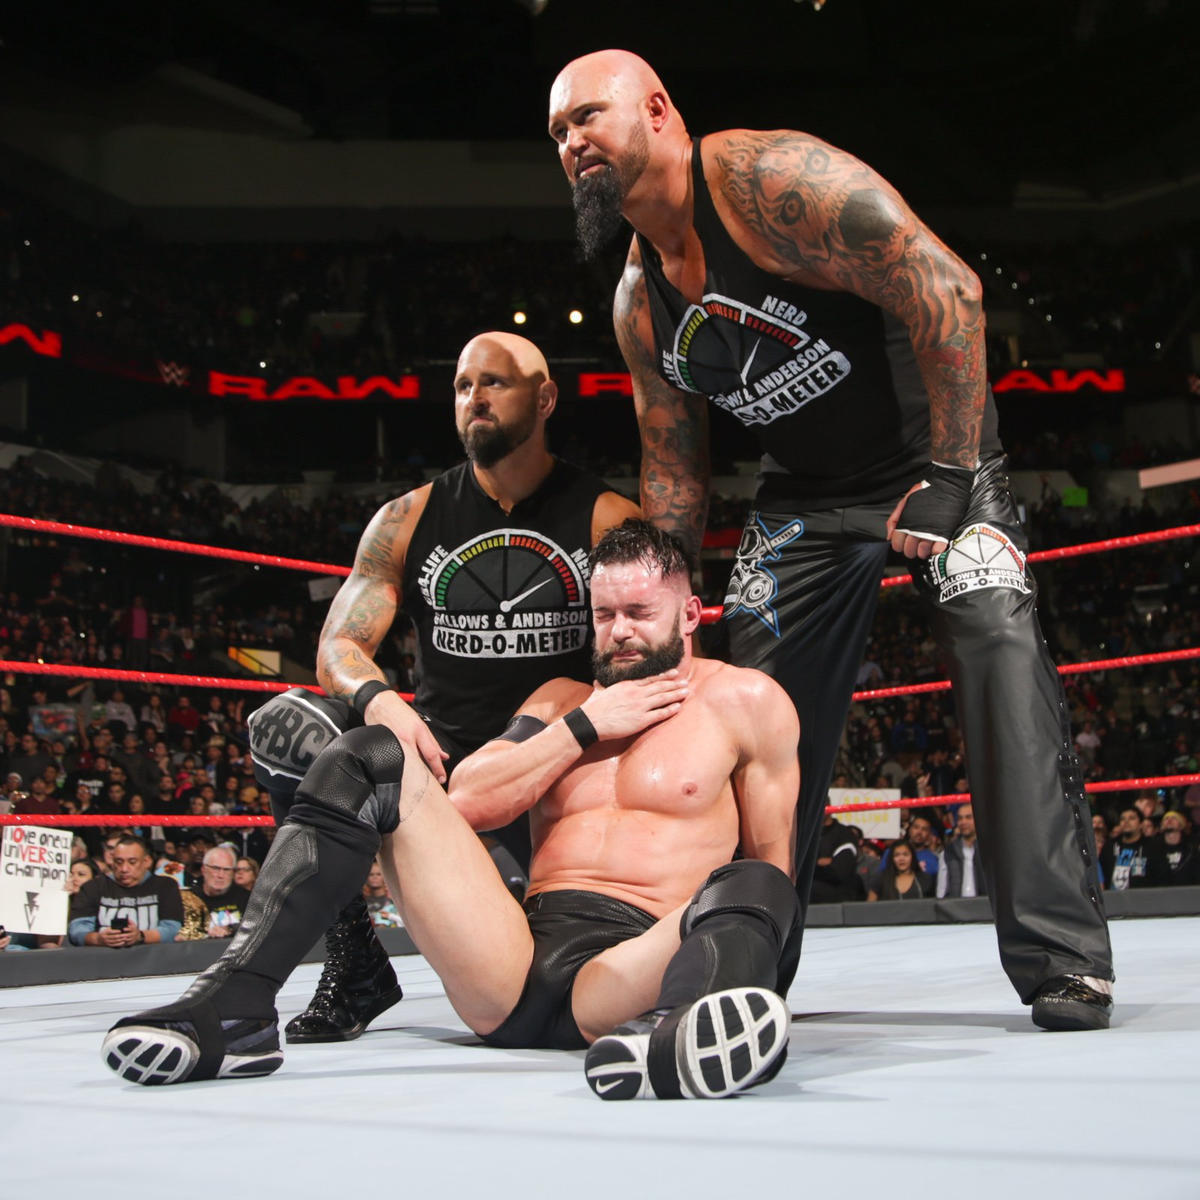 ... while Gallows & Anderson help Bálor as Raw concludes.